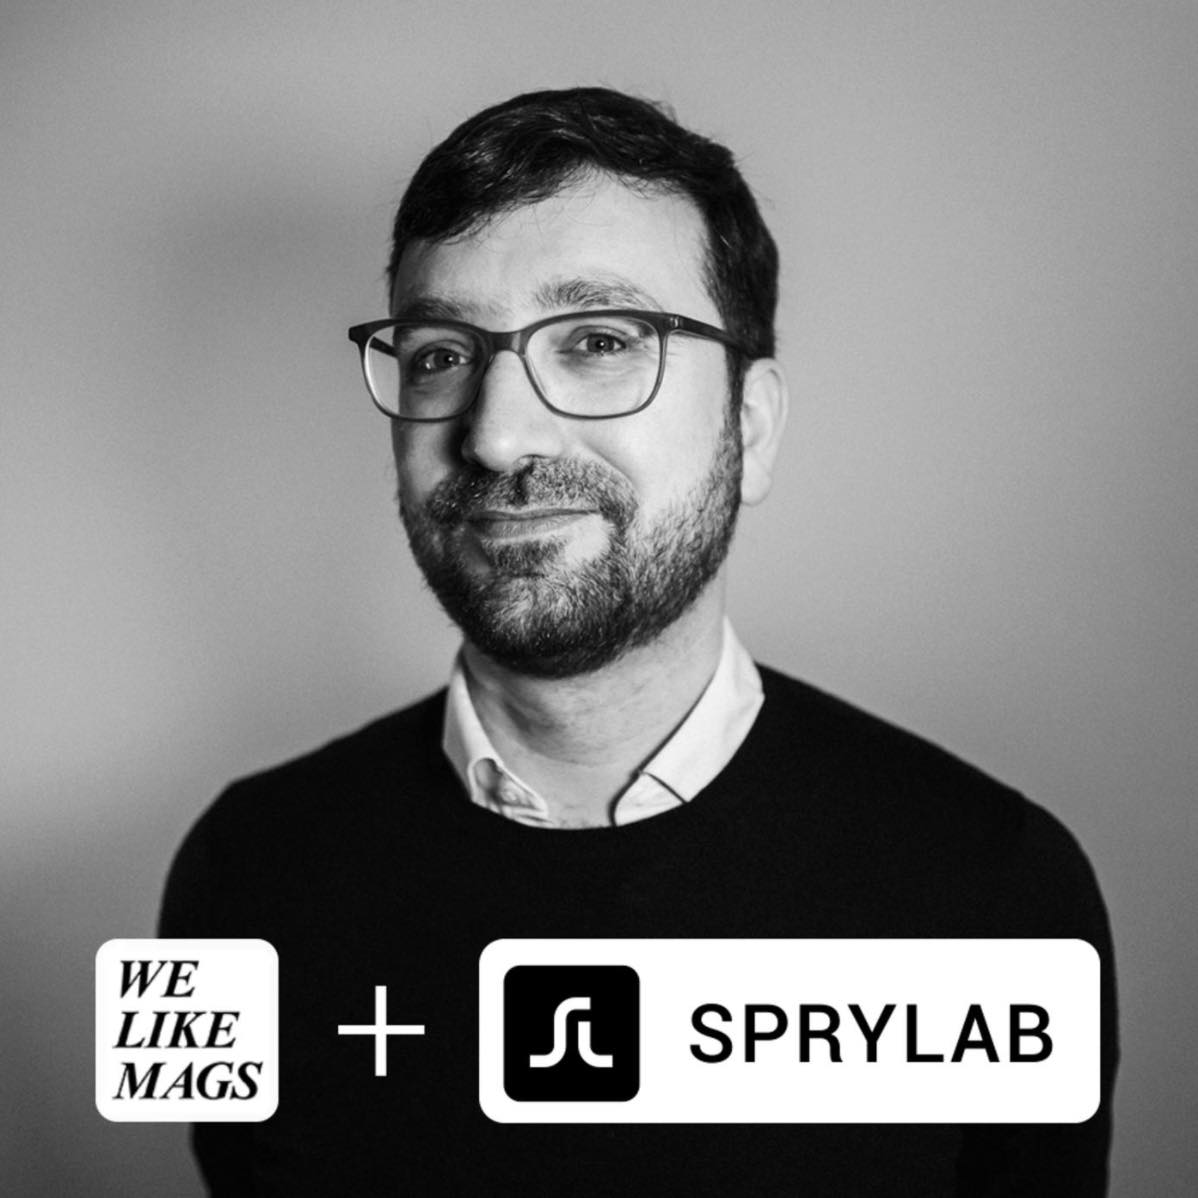 Welikemags x SPRYLAB Podcast-Special mit Peter Dyllick-Brenzinger